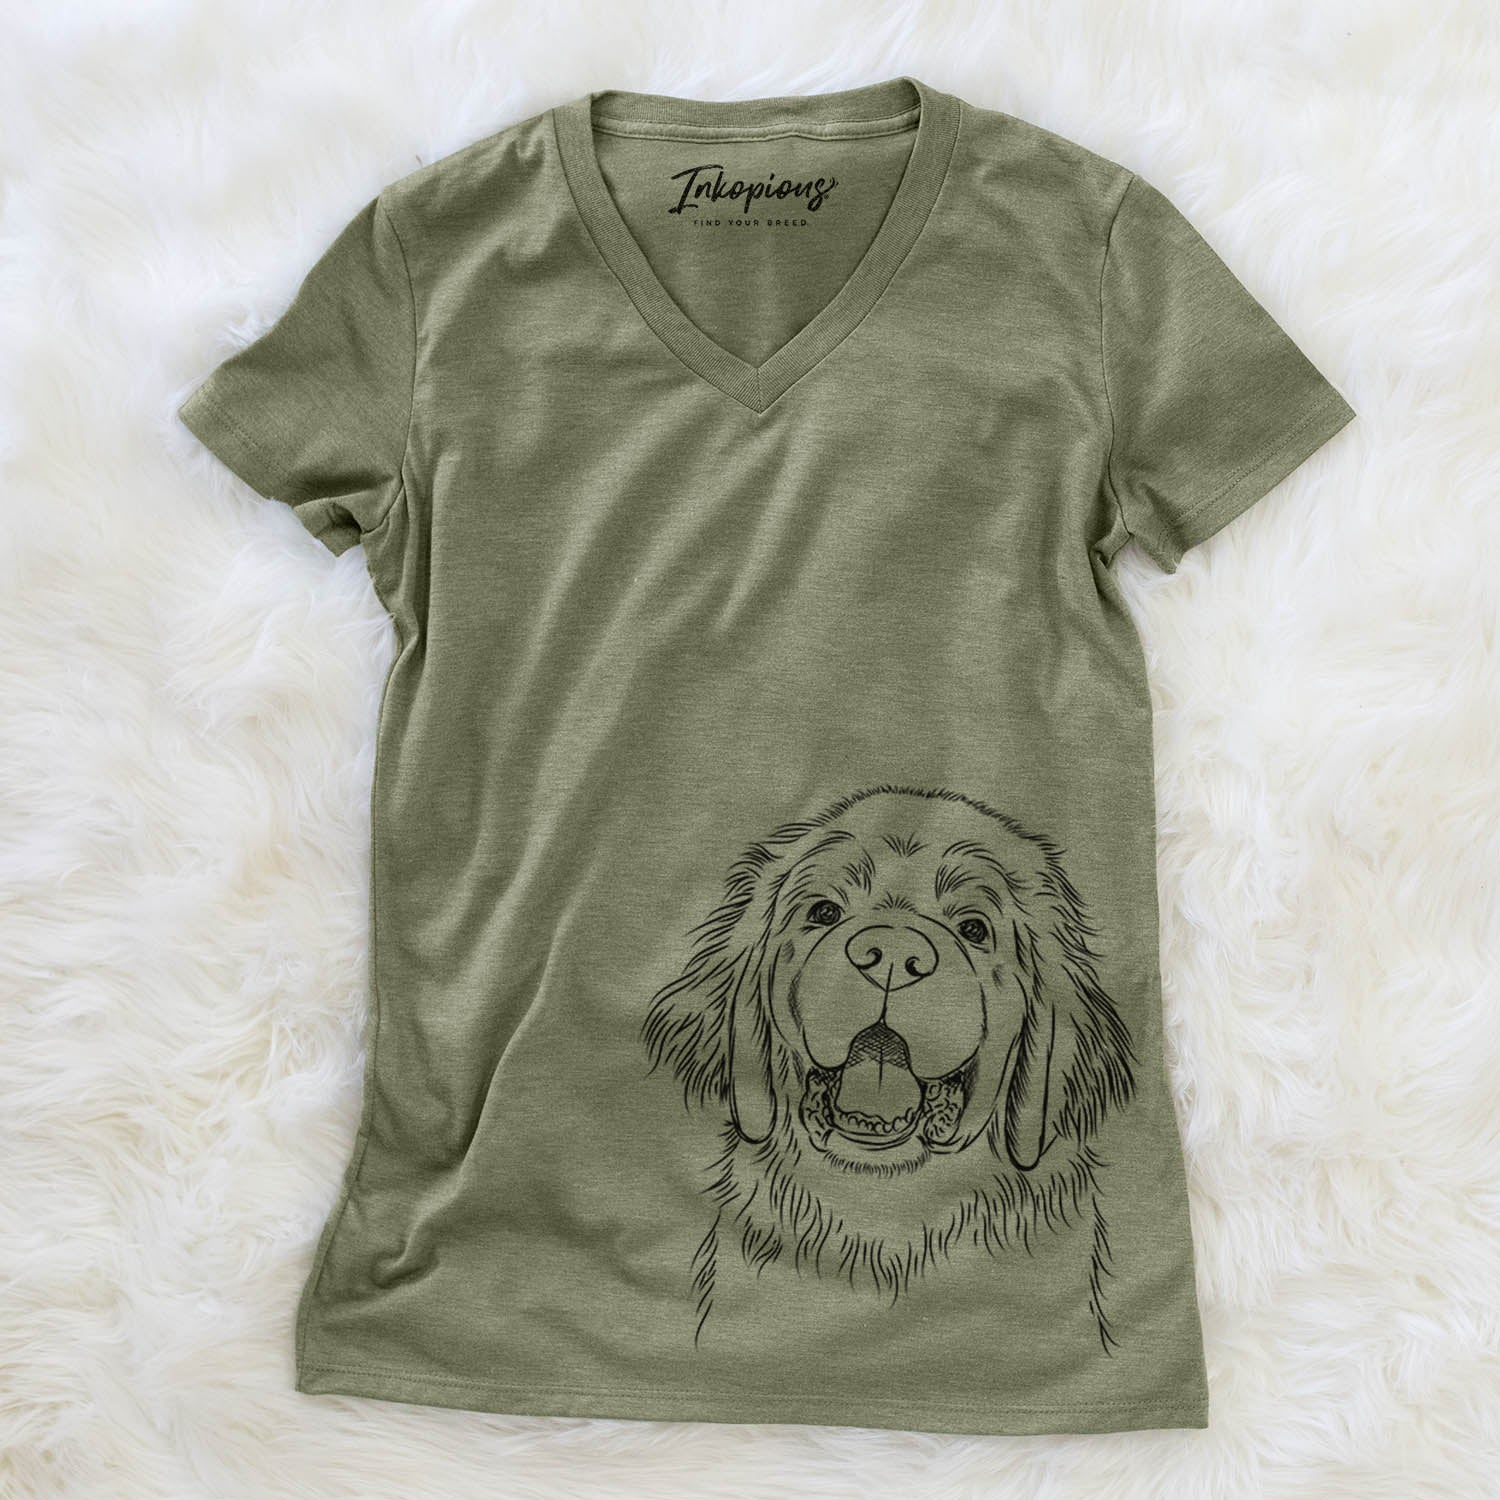 Mozart the Newfoundland - Women's Modern Fit V-neck Shirt